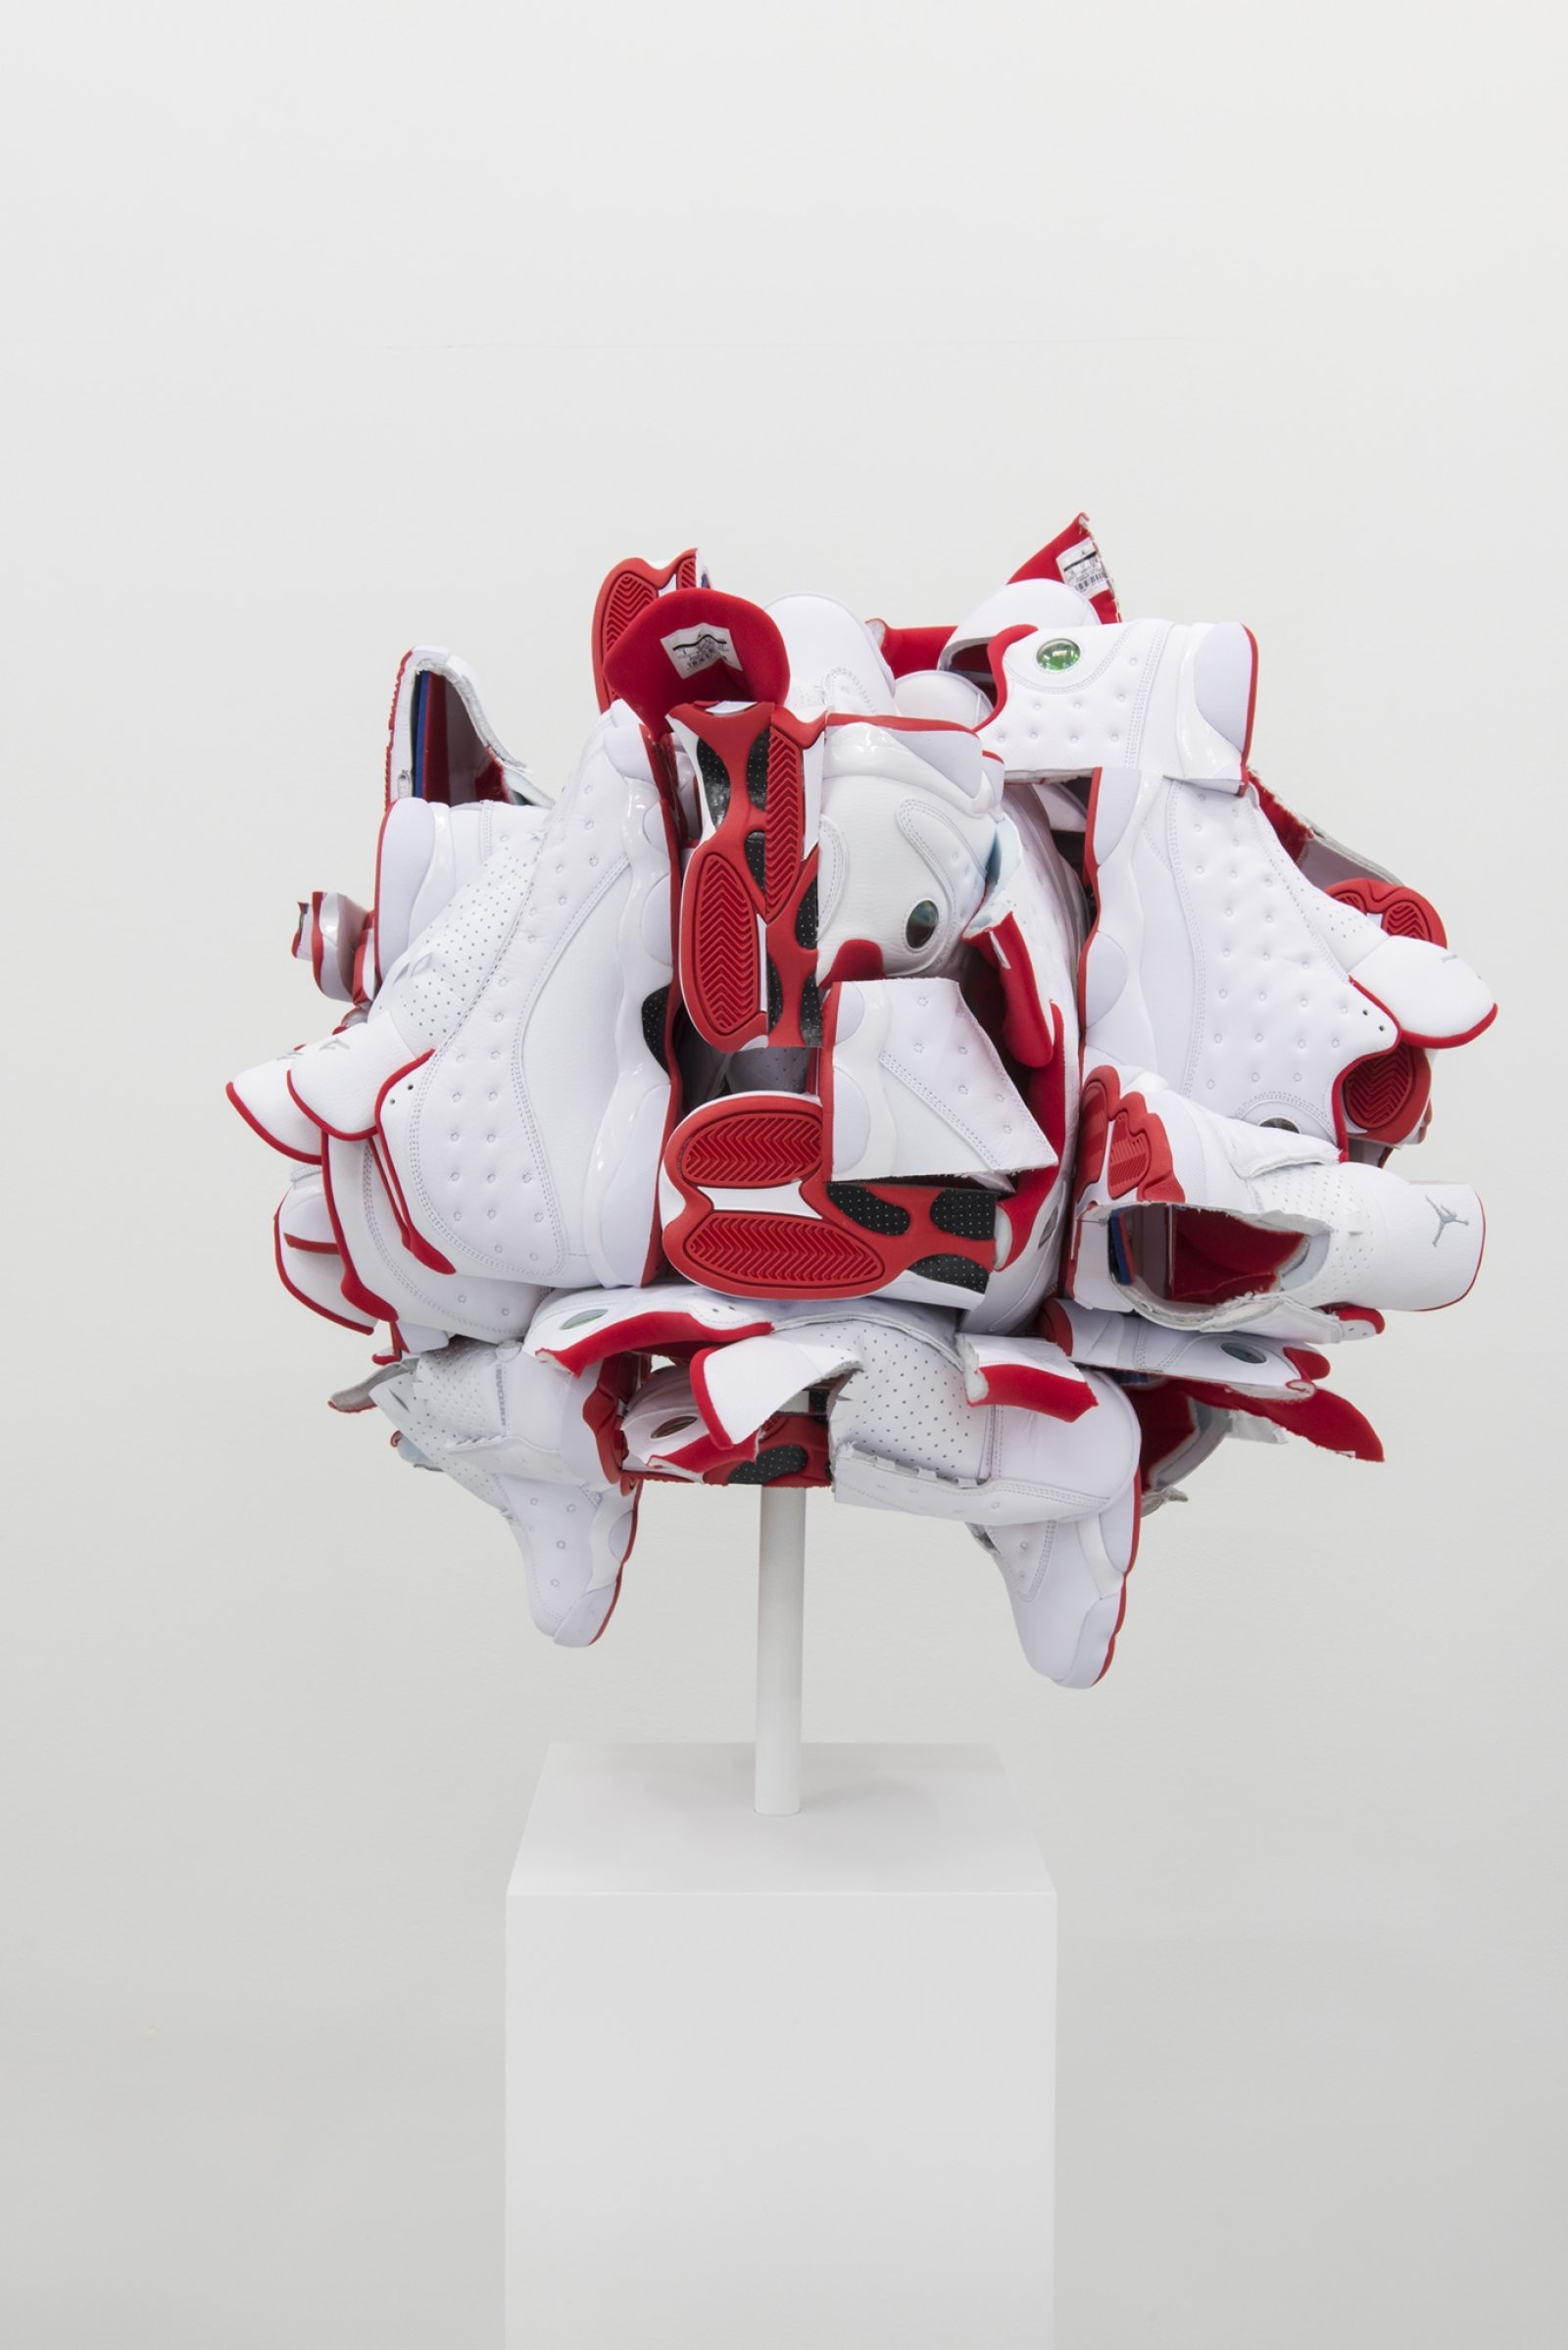 Brian Jungen, Supersize the Light in All Directions 2, 2018, nike air jordans, 29 x 29 x 29 in. (74 x 74 x 74 cm)